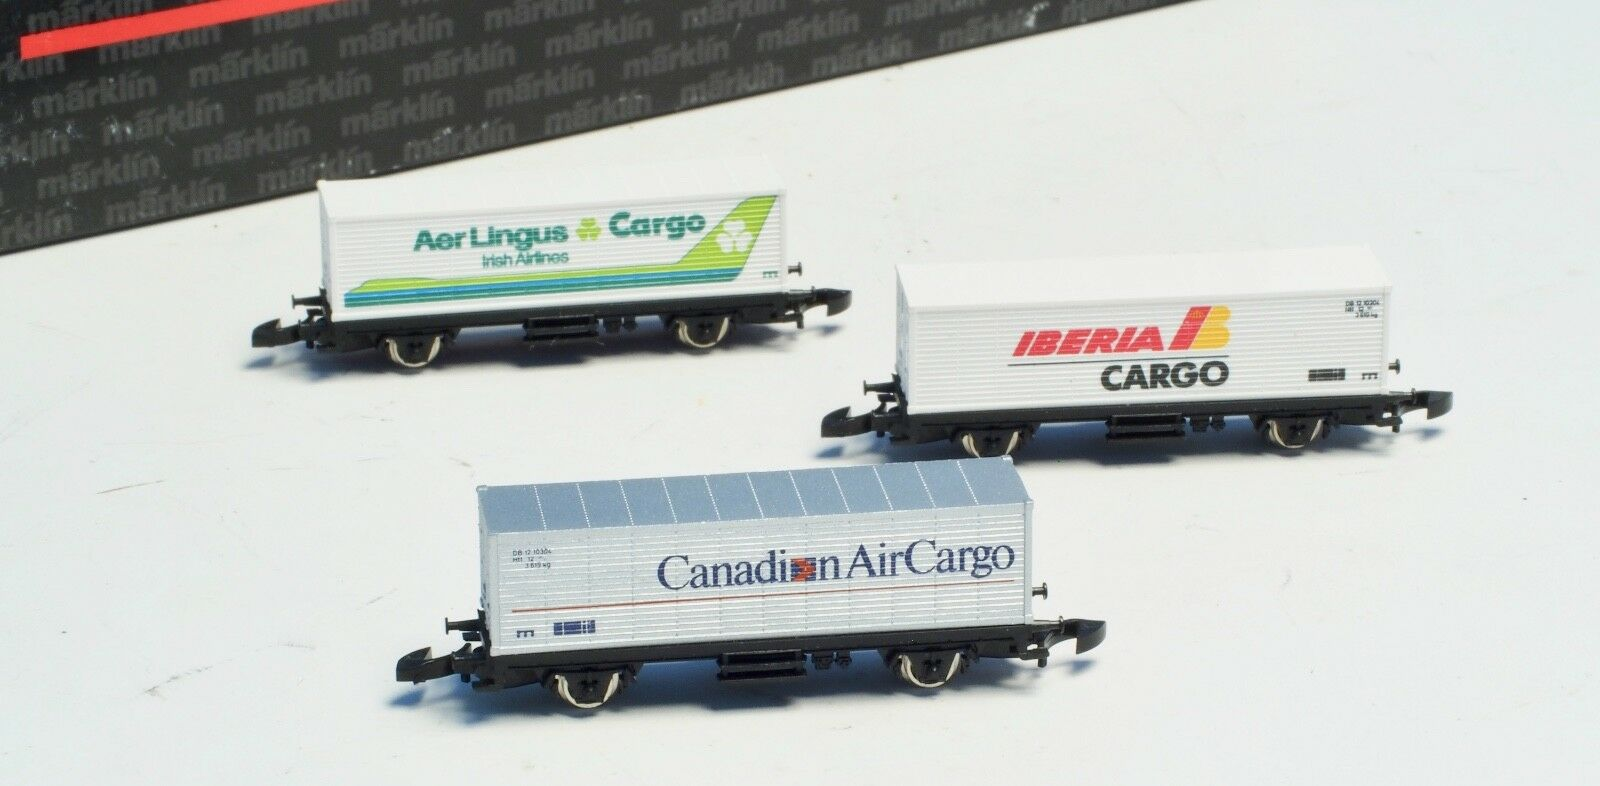 Marklin Z-scale International Airlines 3 car container set, very rare